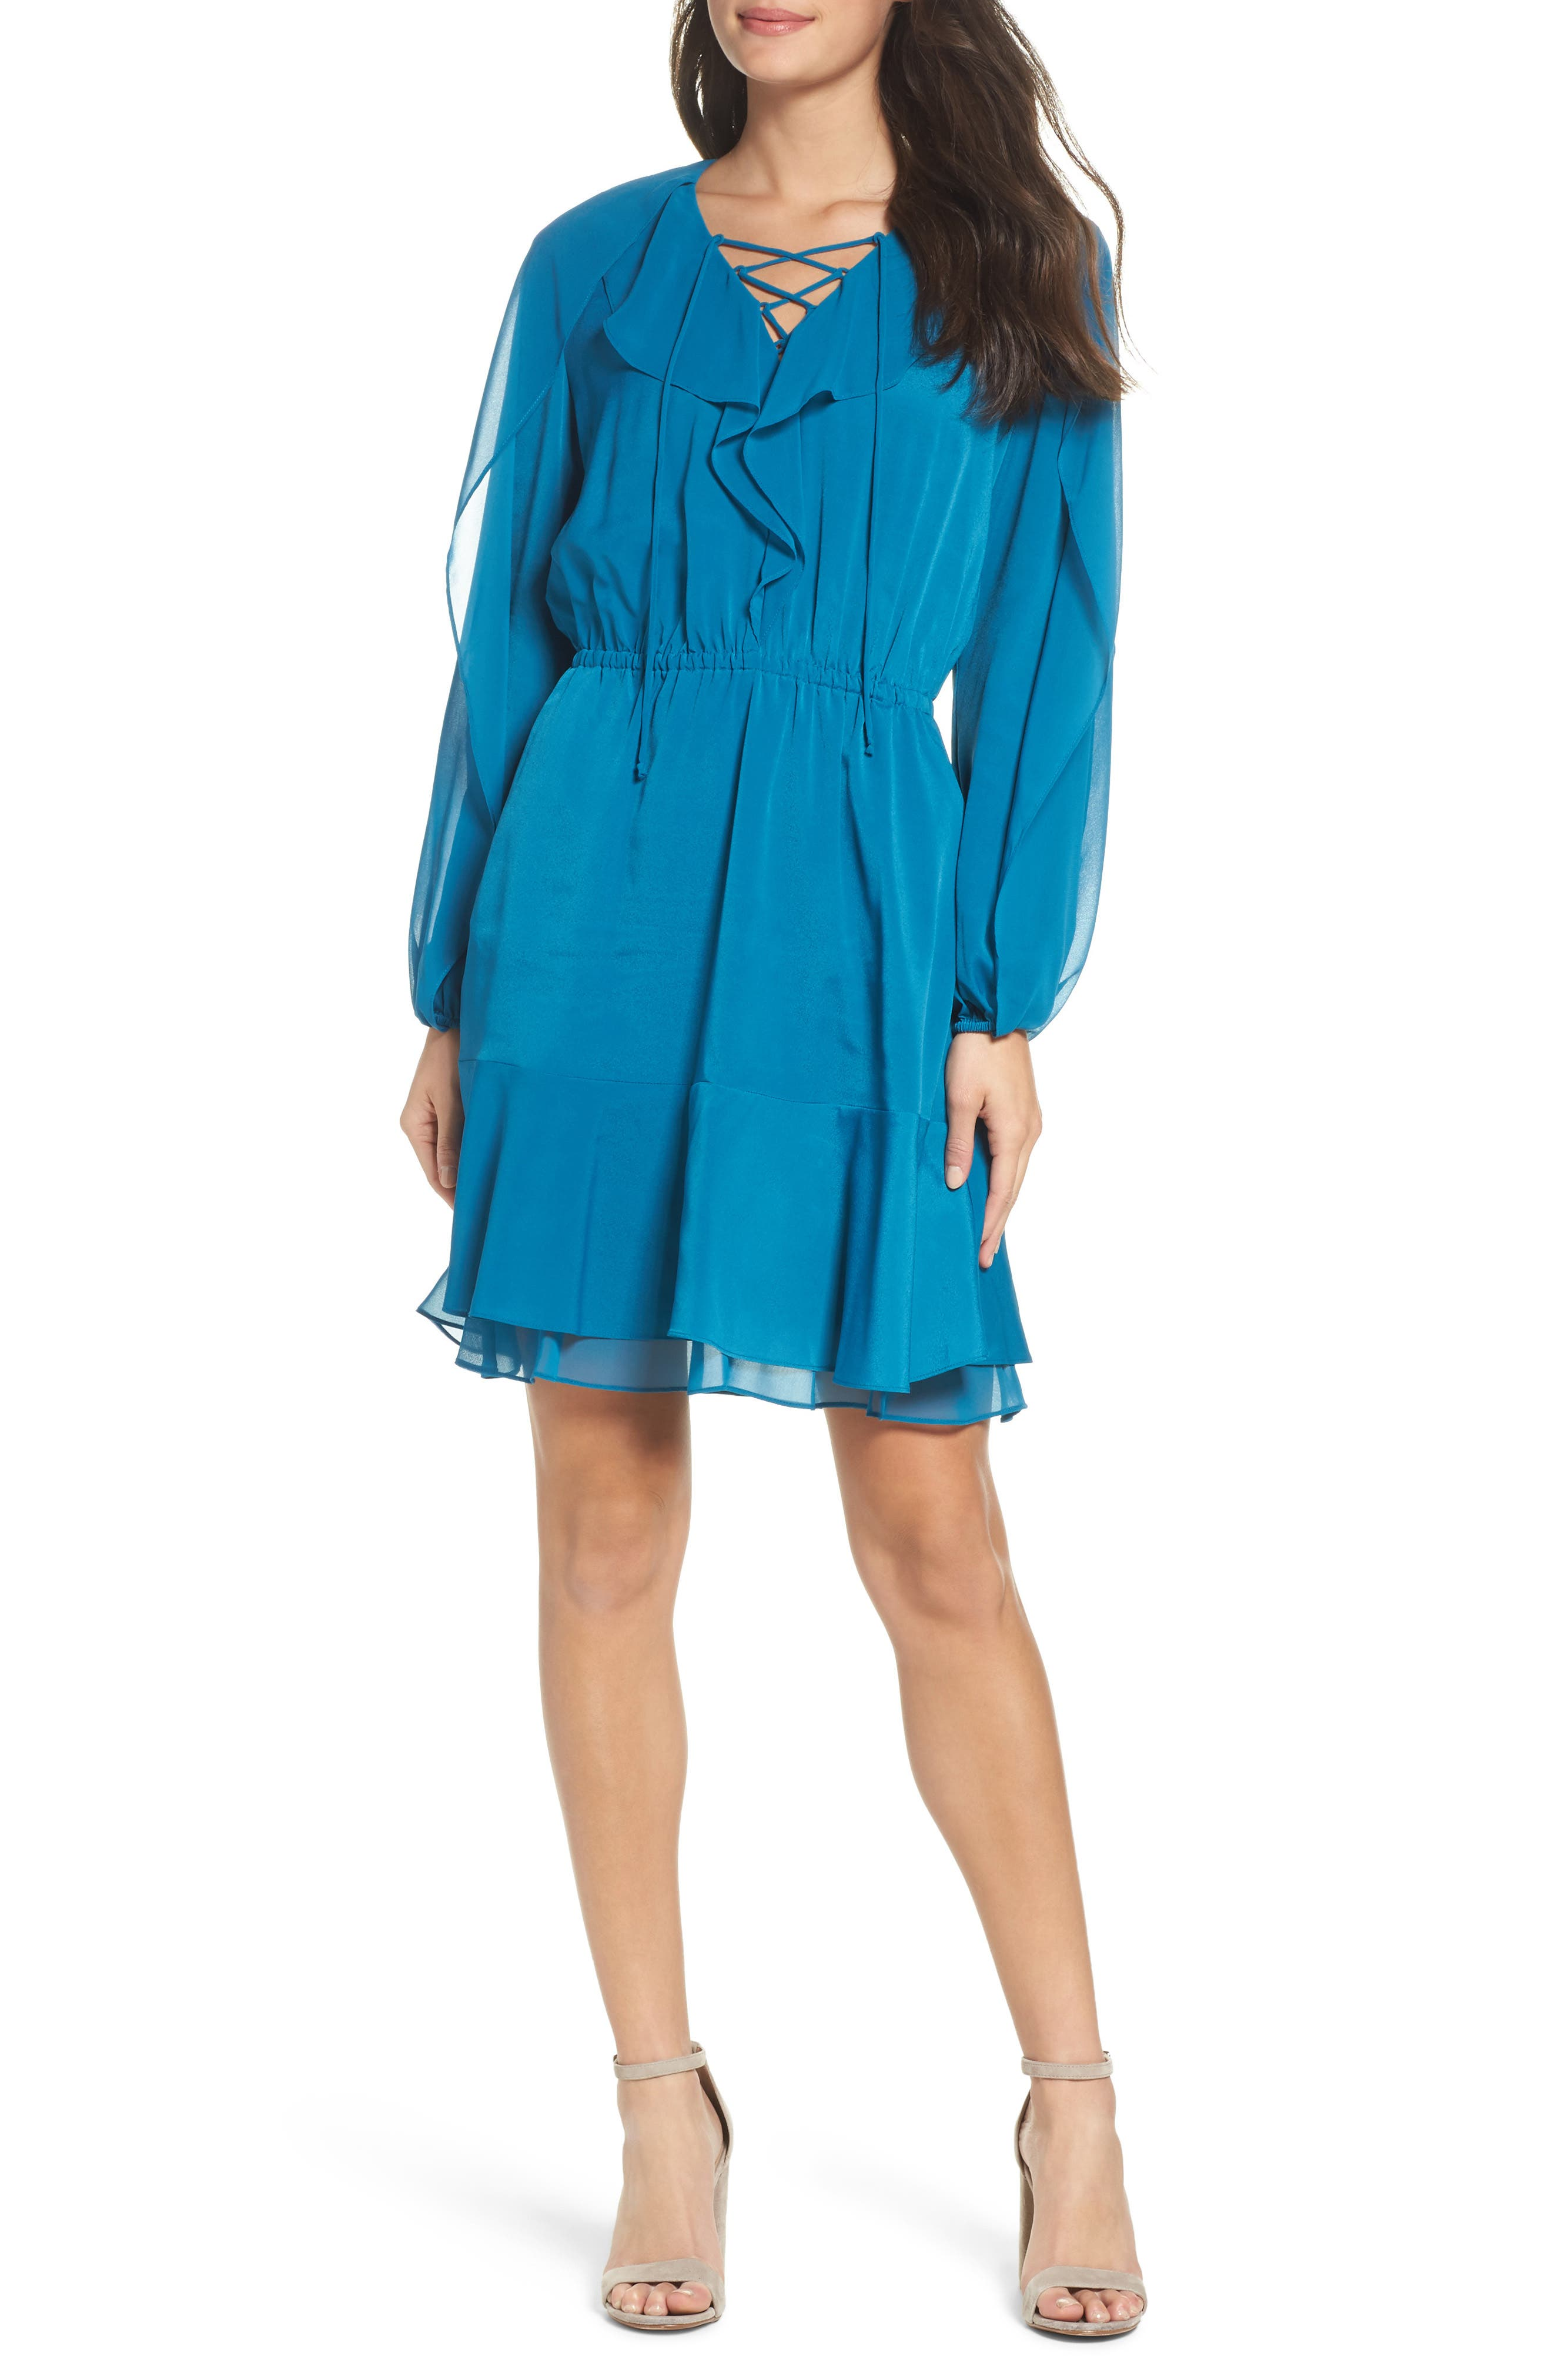 Main Image - Kobi Halperin Keely Ruffle Blouson Dress (Nordstrom Exclusive)